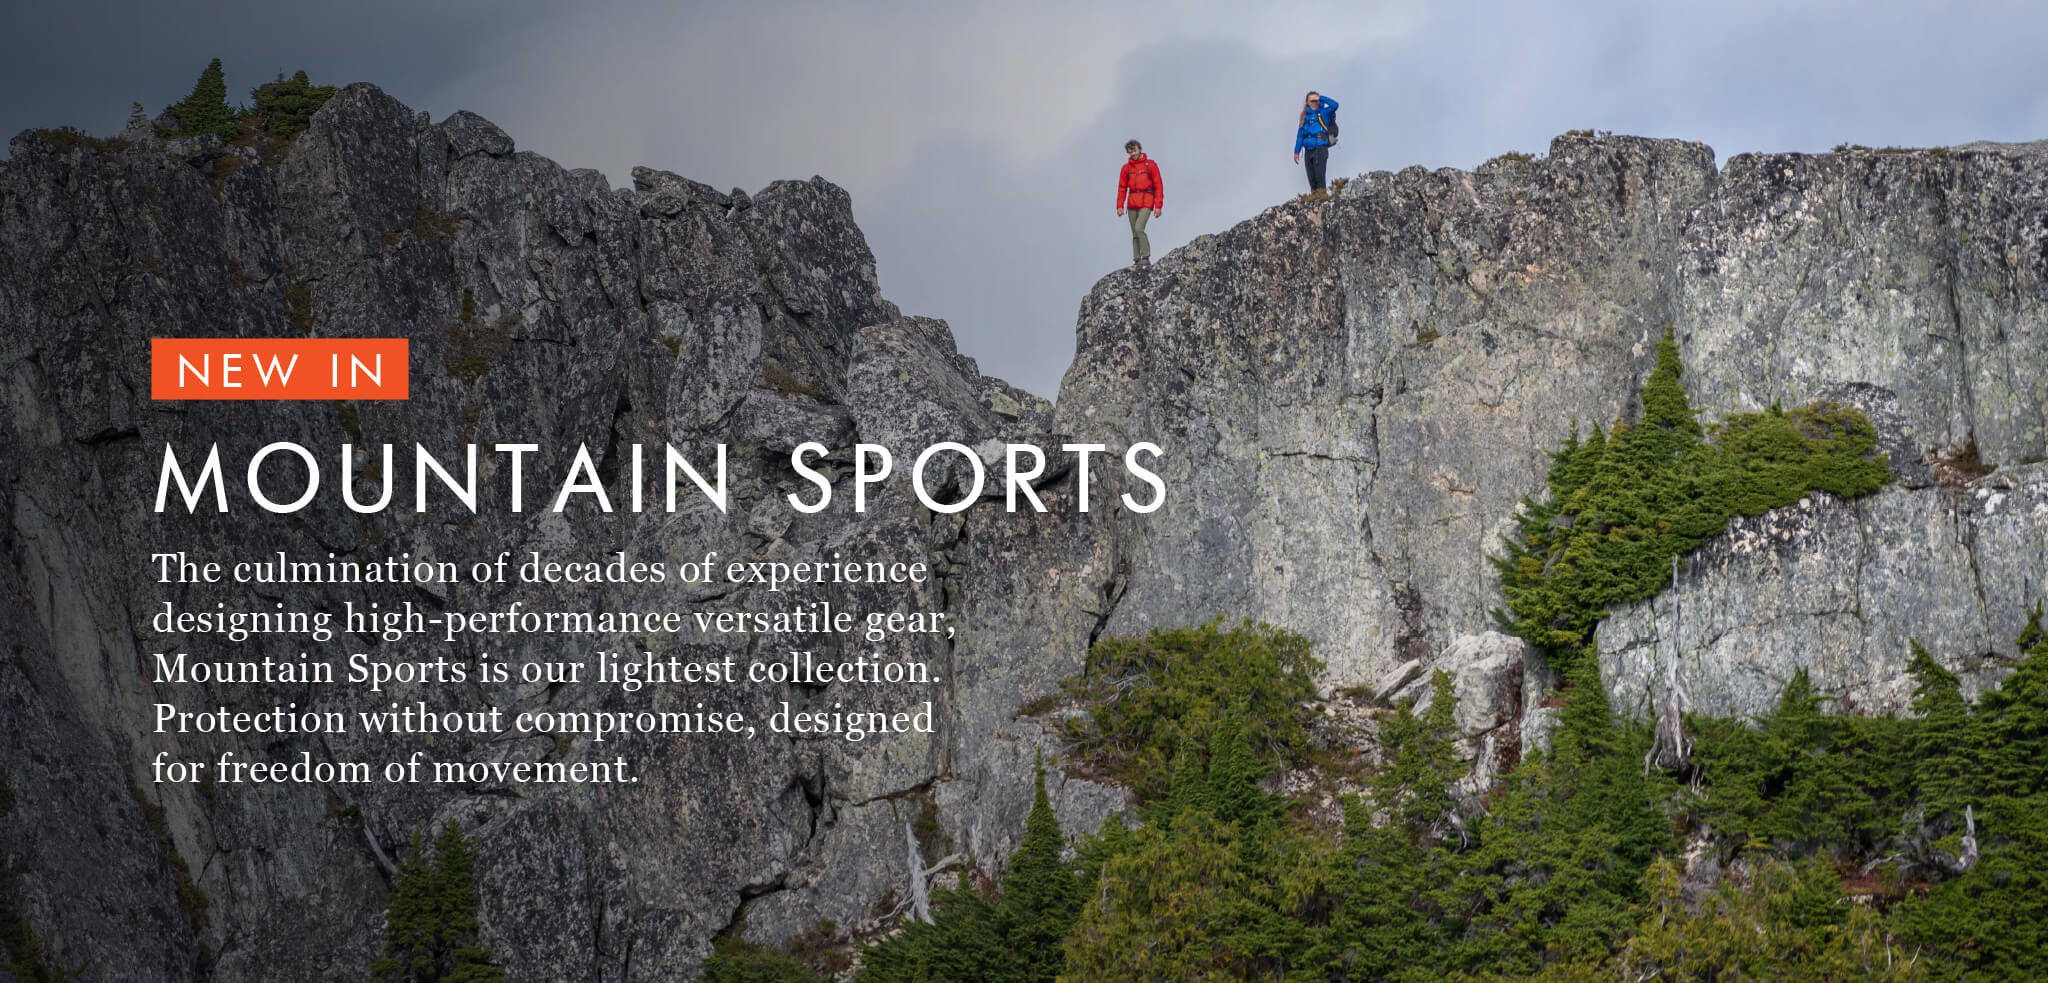 New In - Mountain Sports - Protection without compromise, designed for freedom of movement.